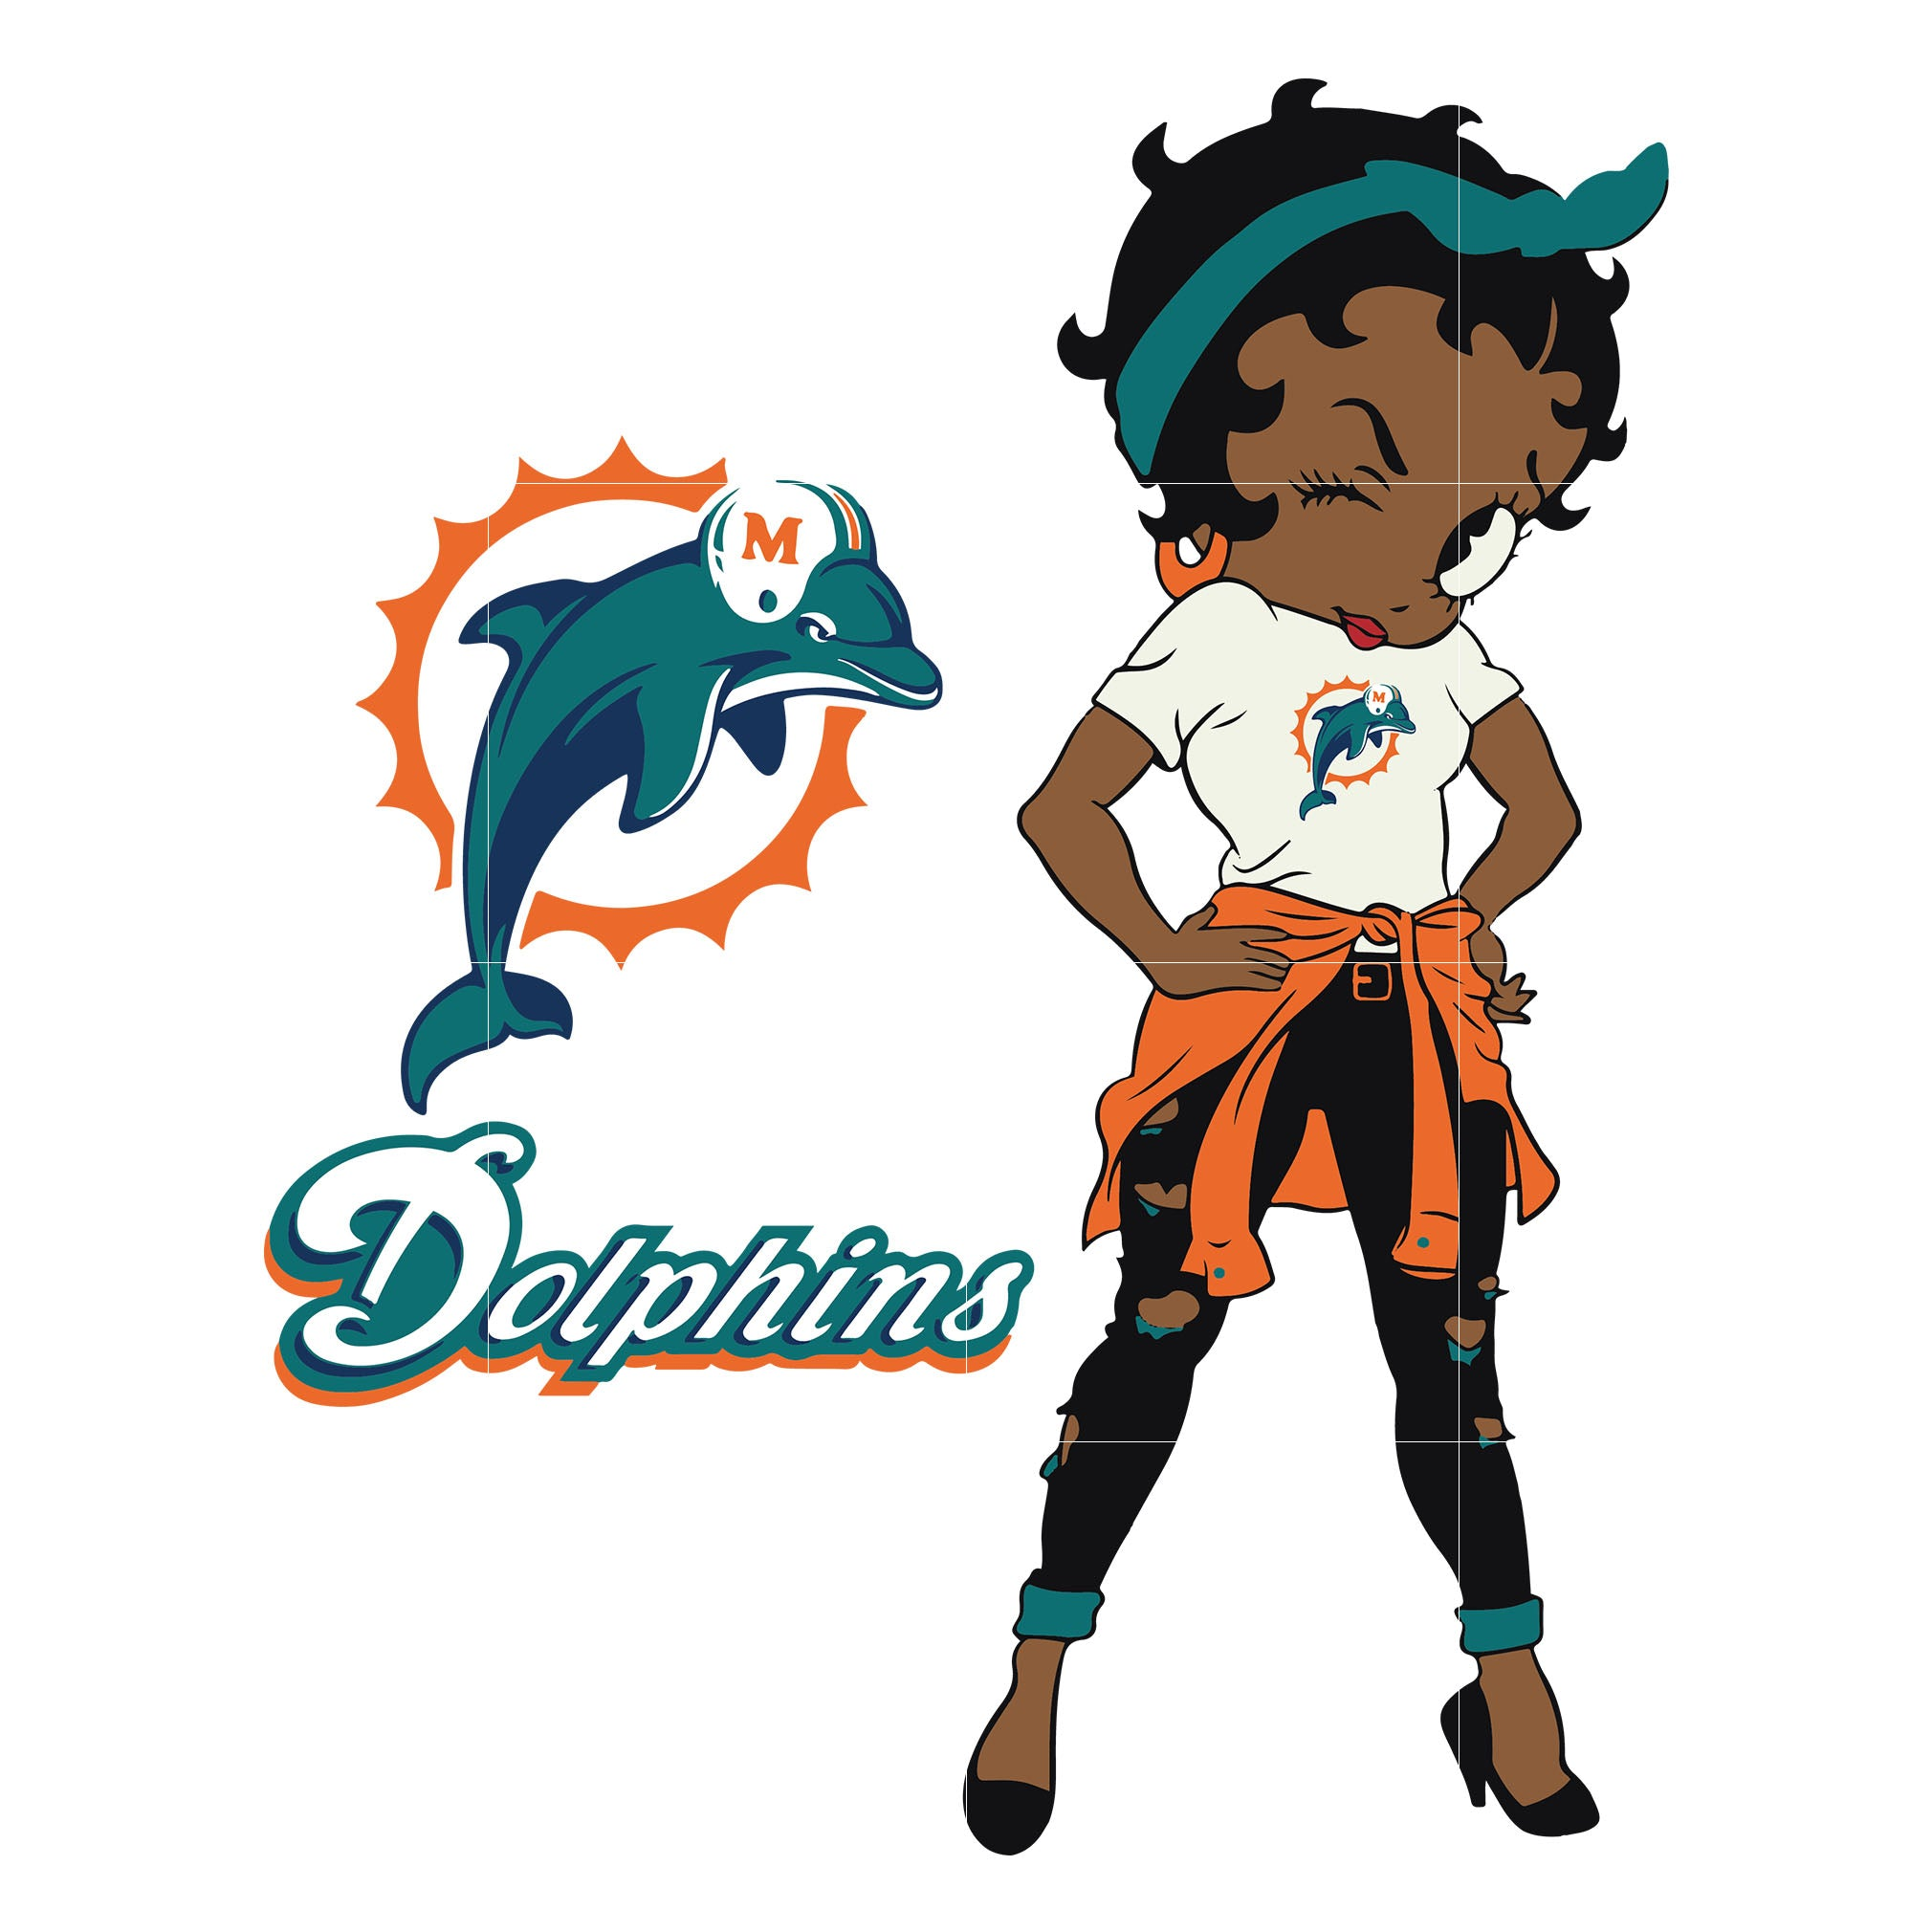 Betty boop Miami Dolphins,  Miami Dolphins svg, png, dxf, eps. INSTANT DOWNLOAD